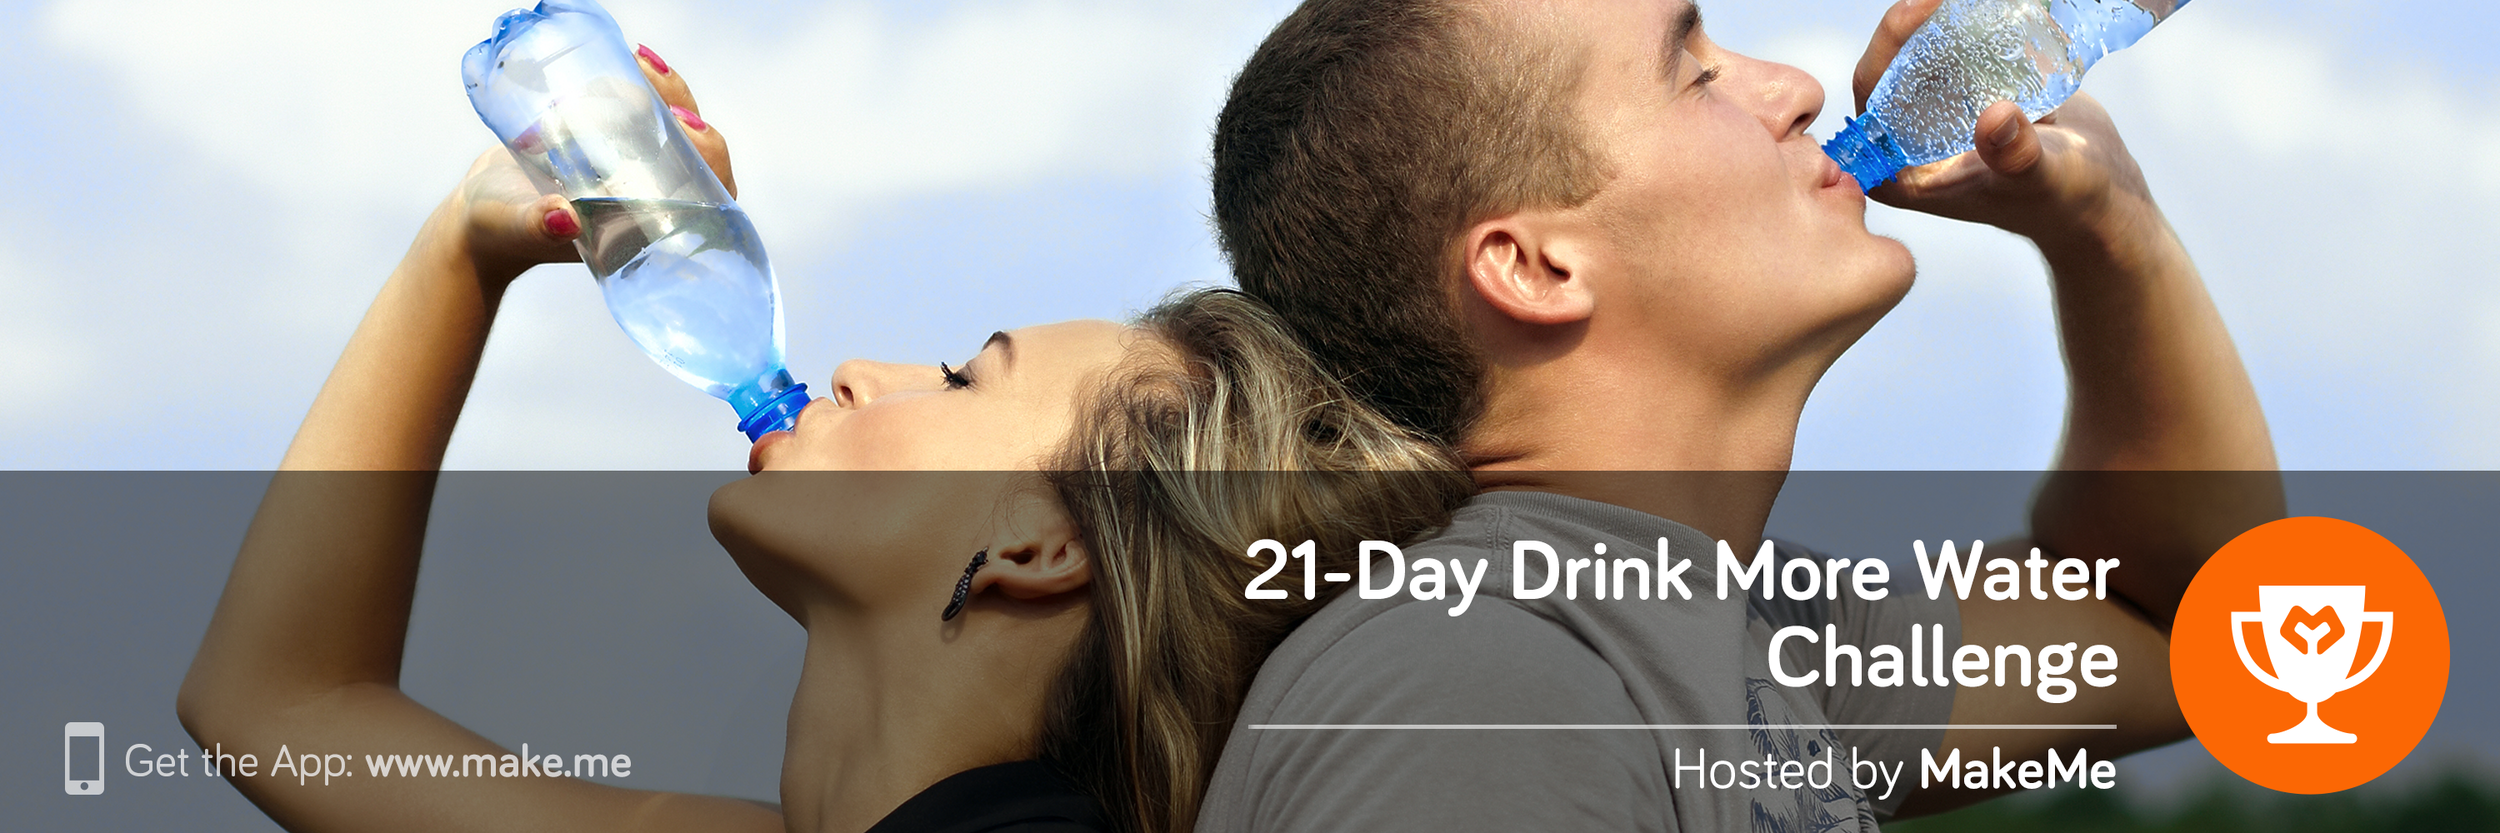 21-Day Drink More Water Challenge